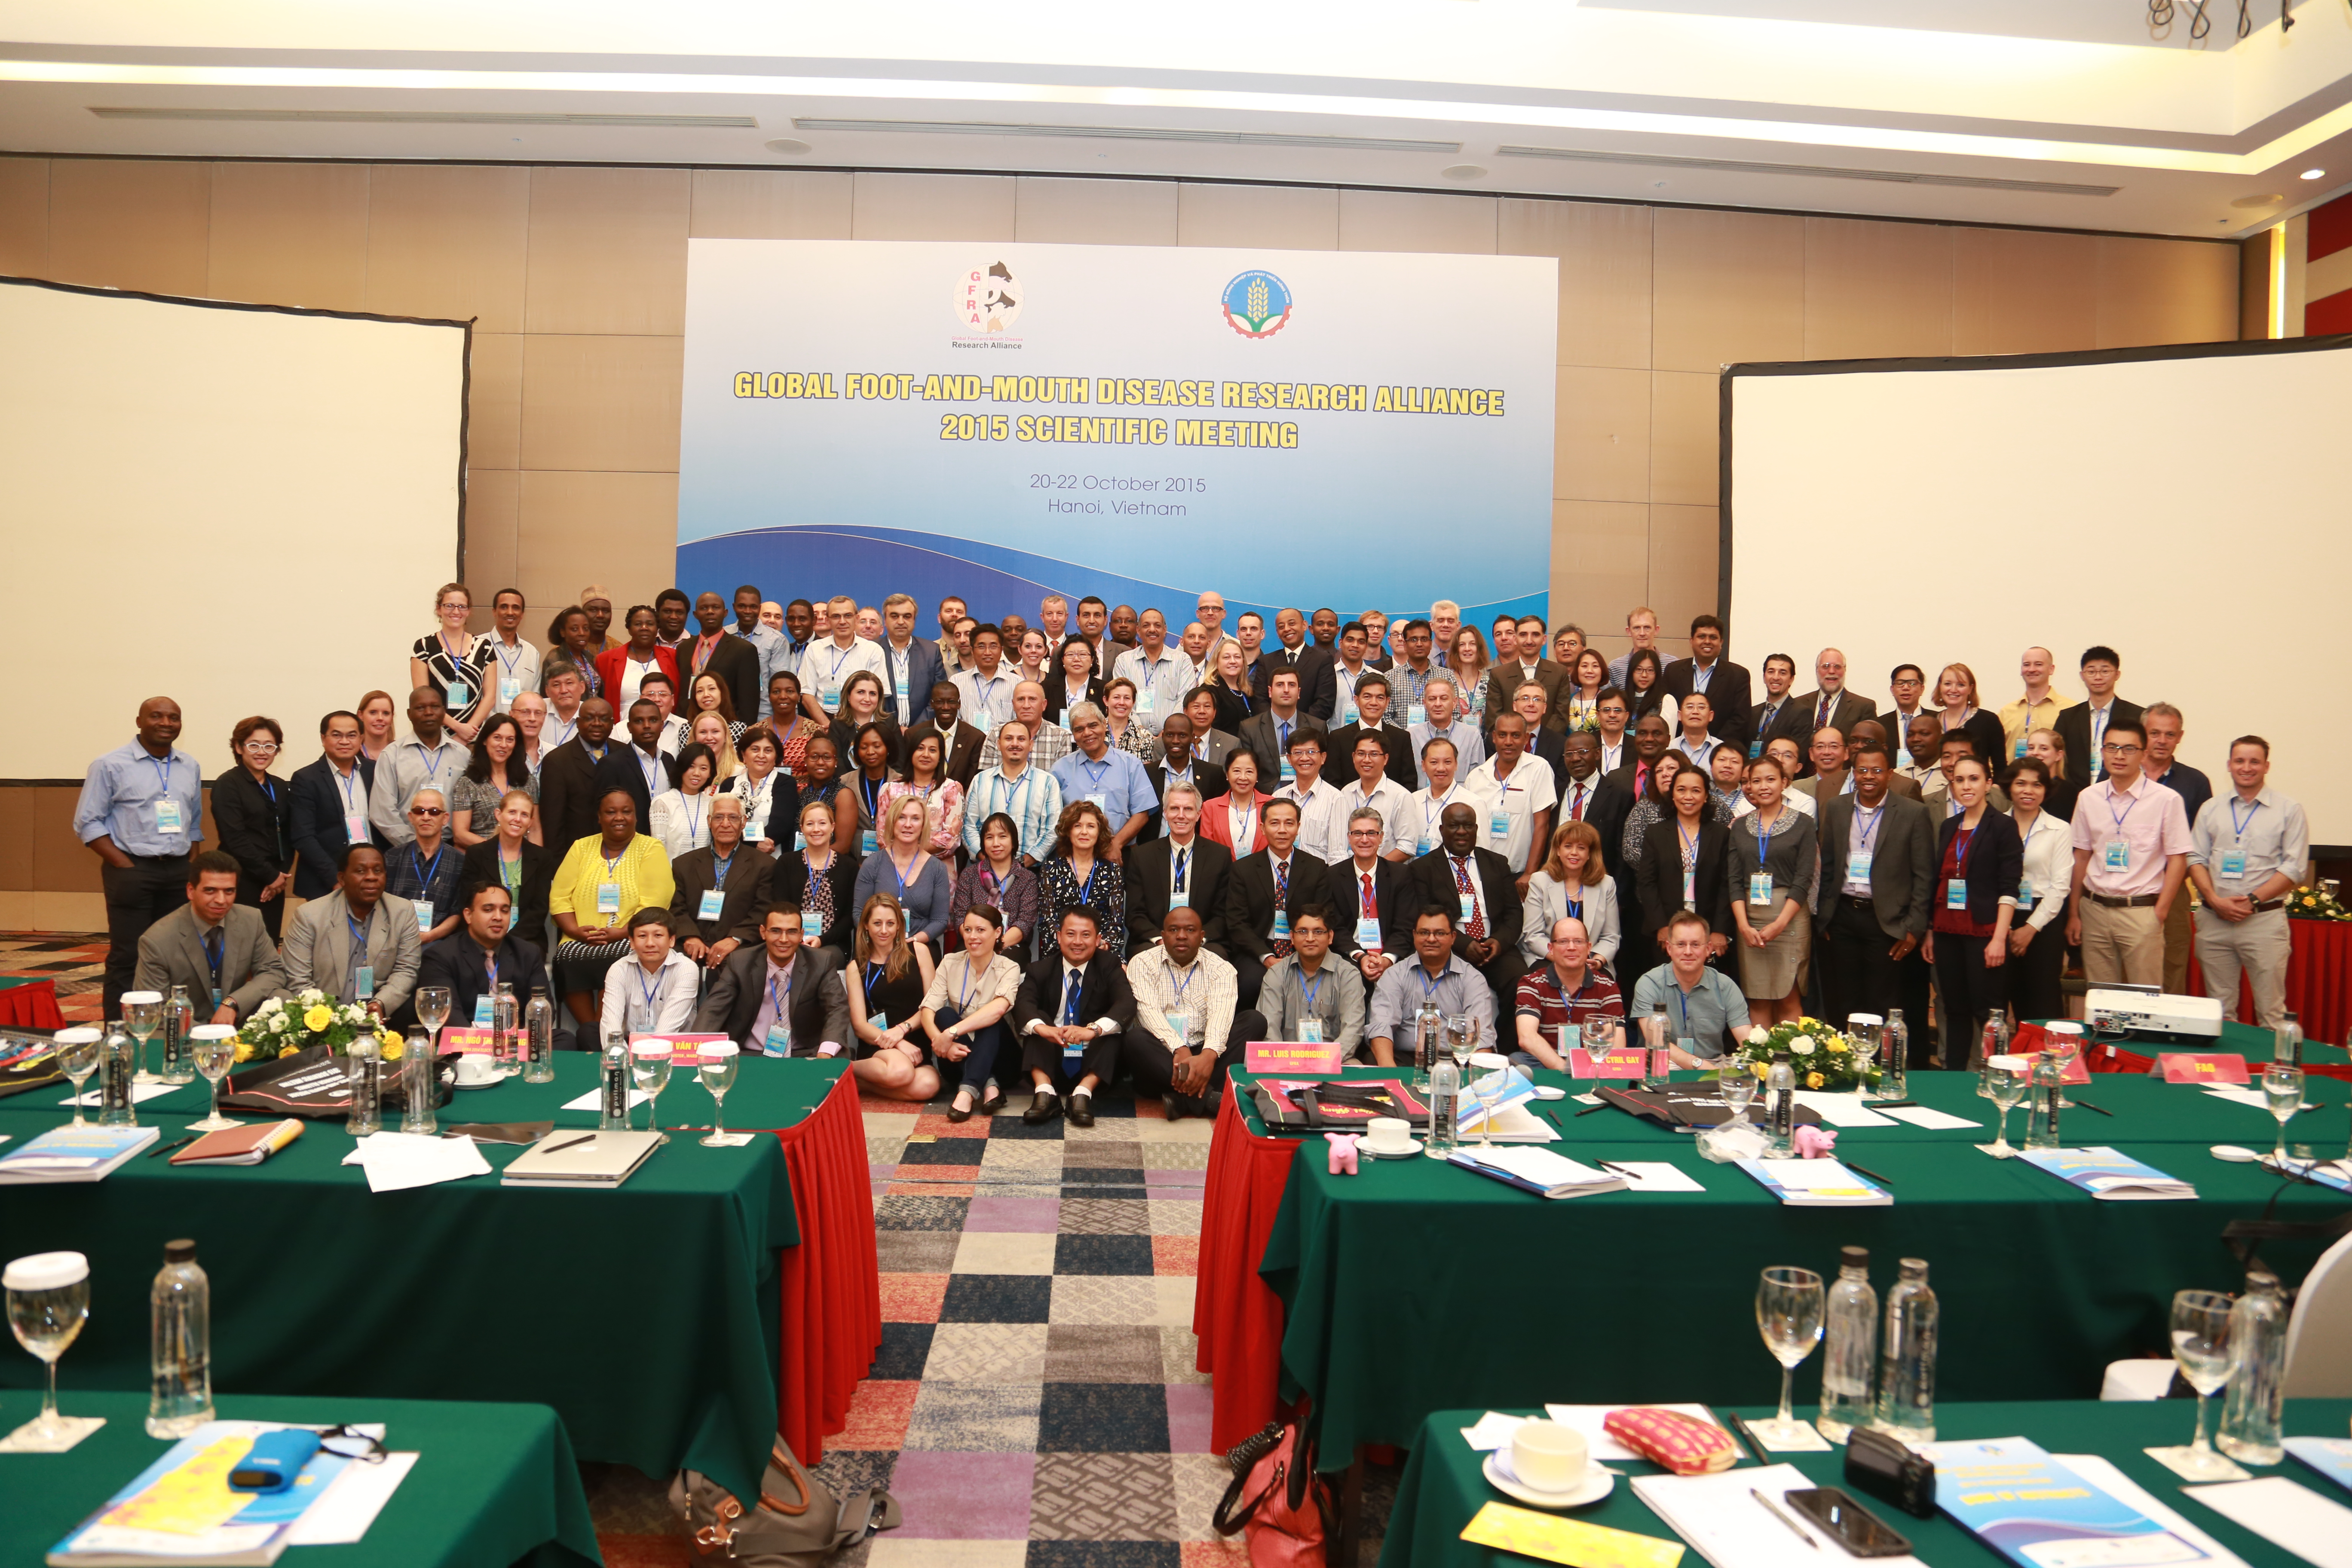 VietnamEvents supported The Global Foot and Mouth Disease Research Alliance (GFRA)